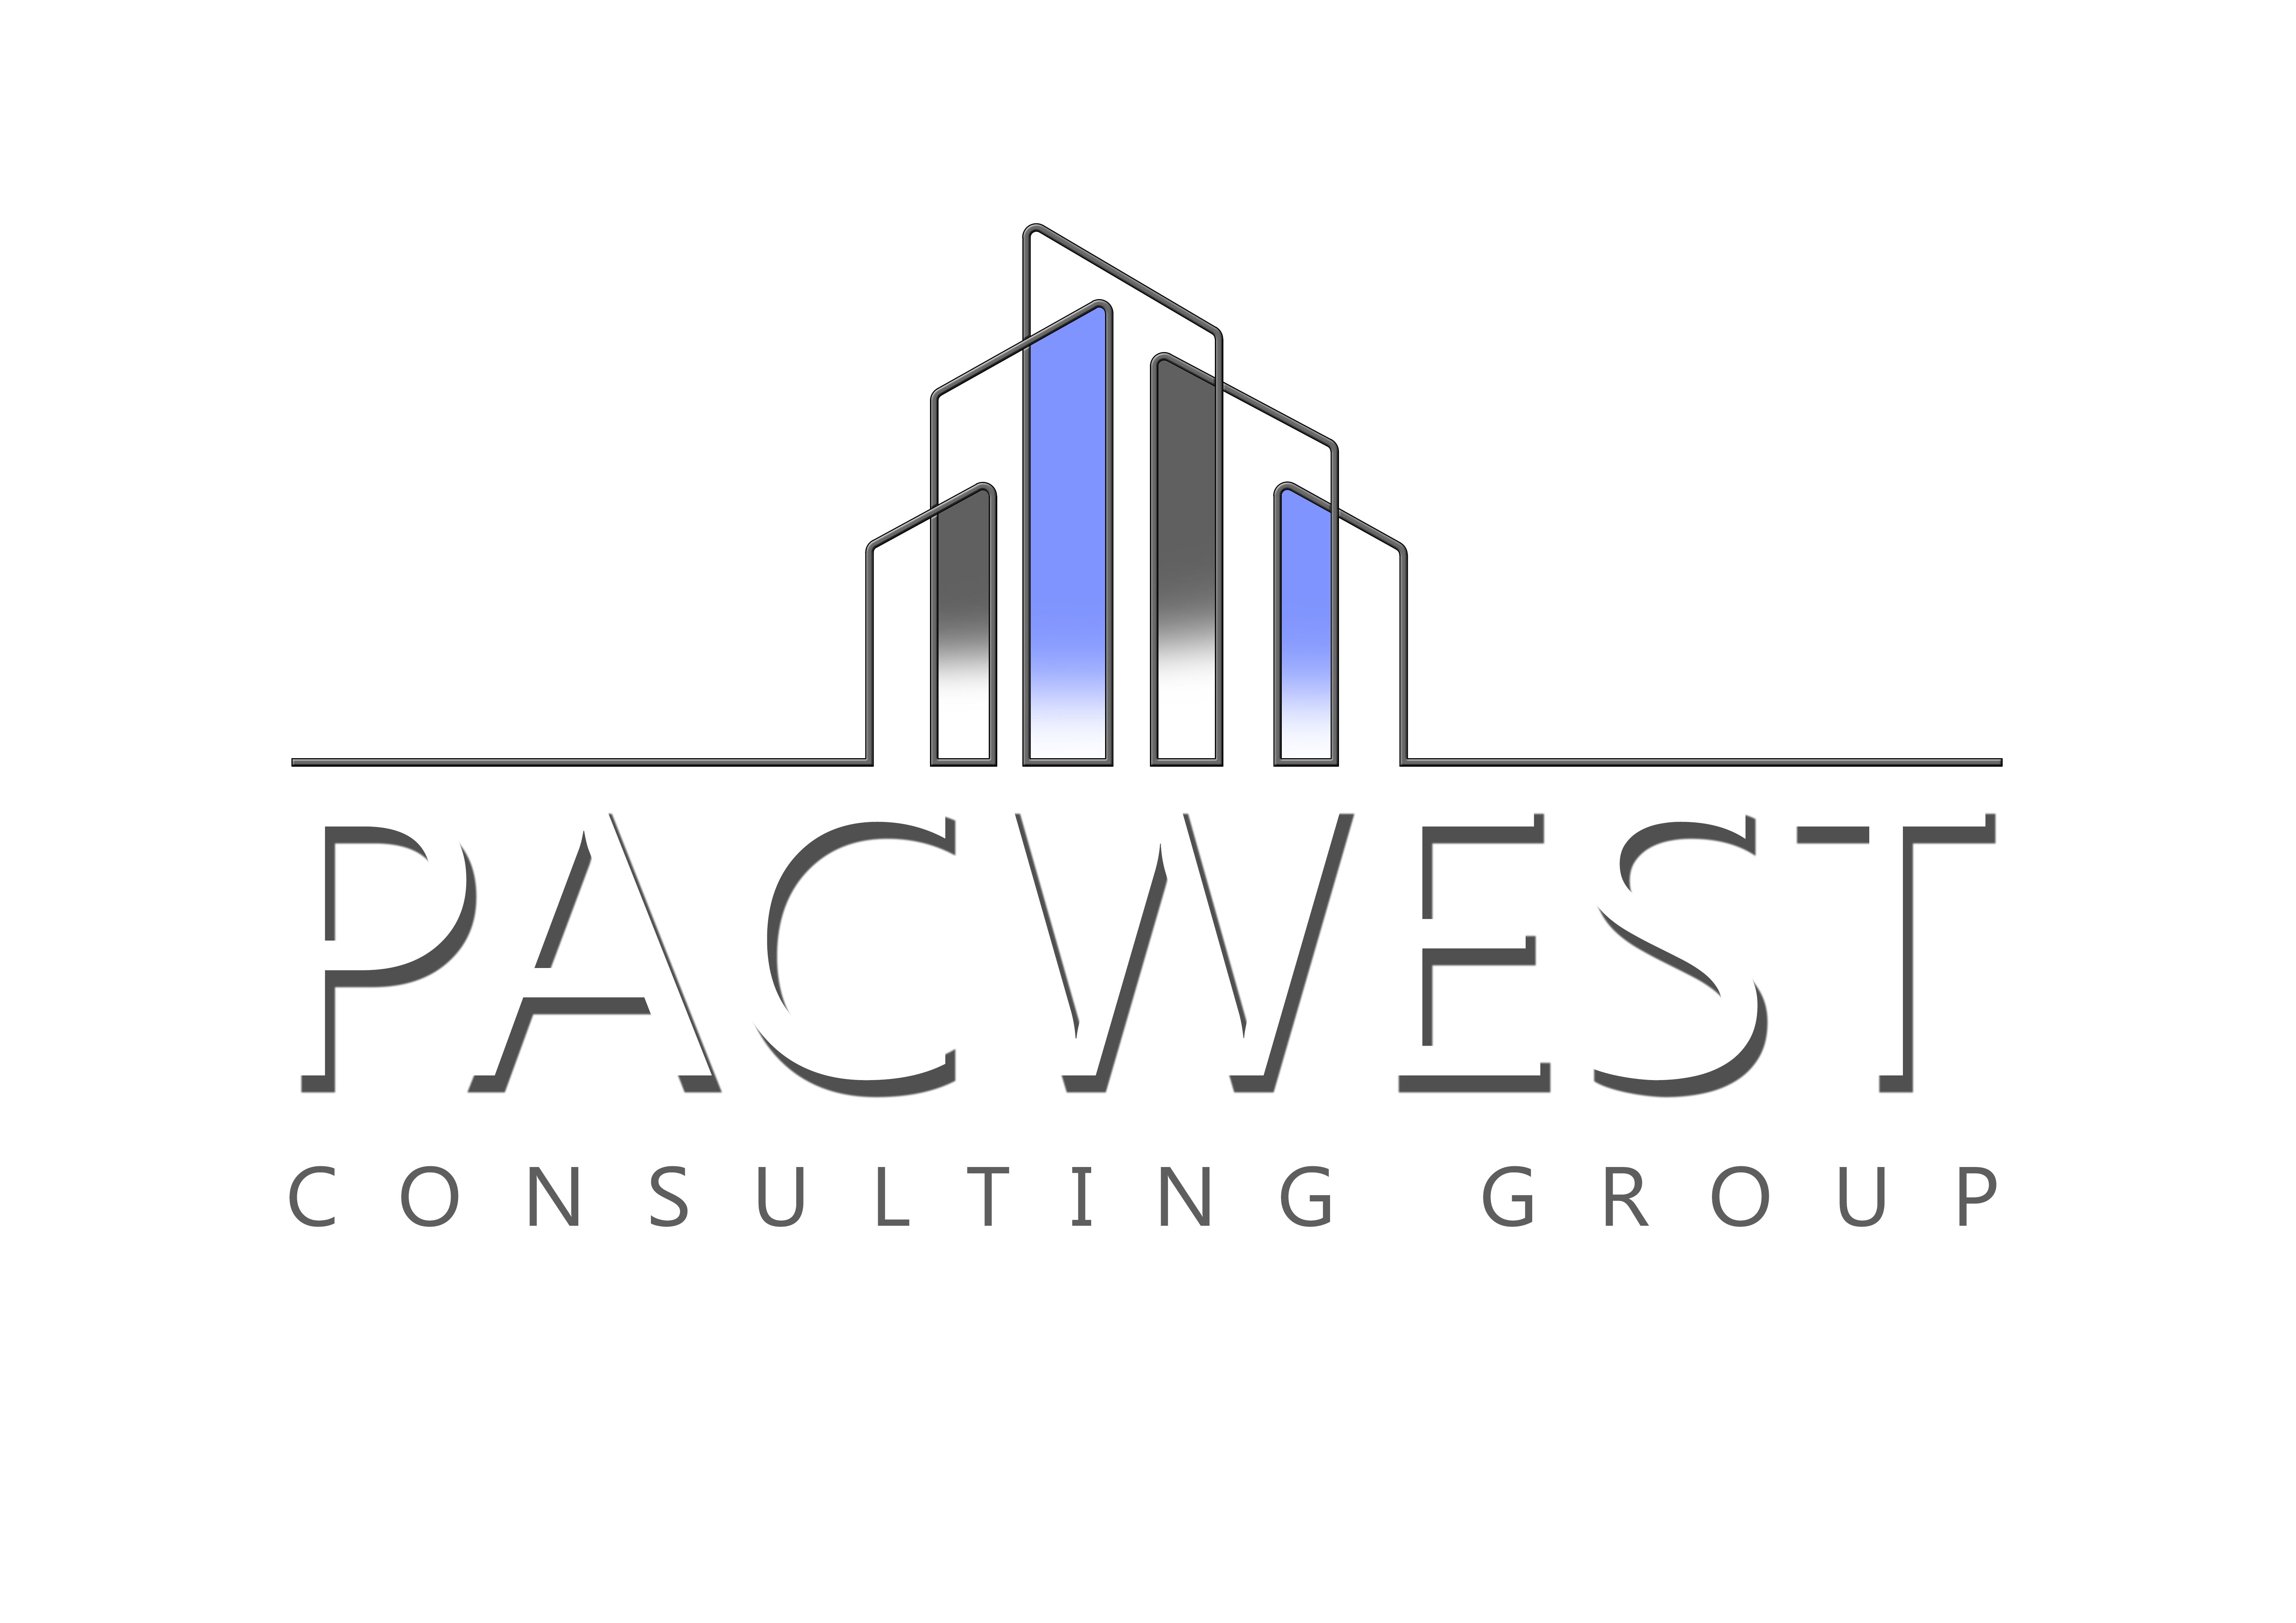 Logo Design by JR Cantos - Entry No. 8 in the Logo Design Contest Imaginative Logo Design for Pacwest Consulting Group.